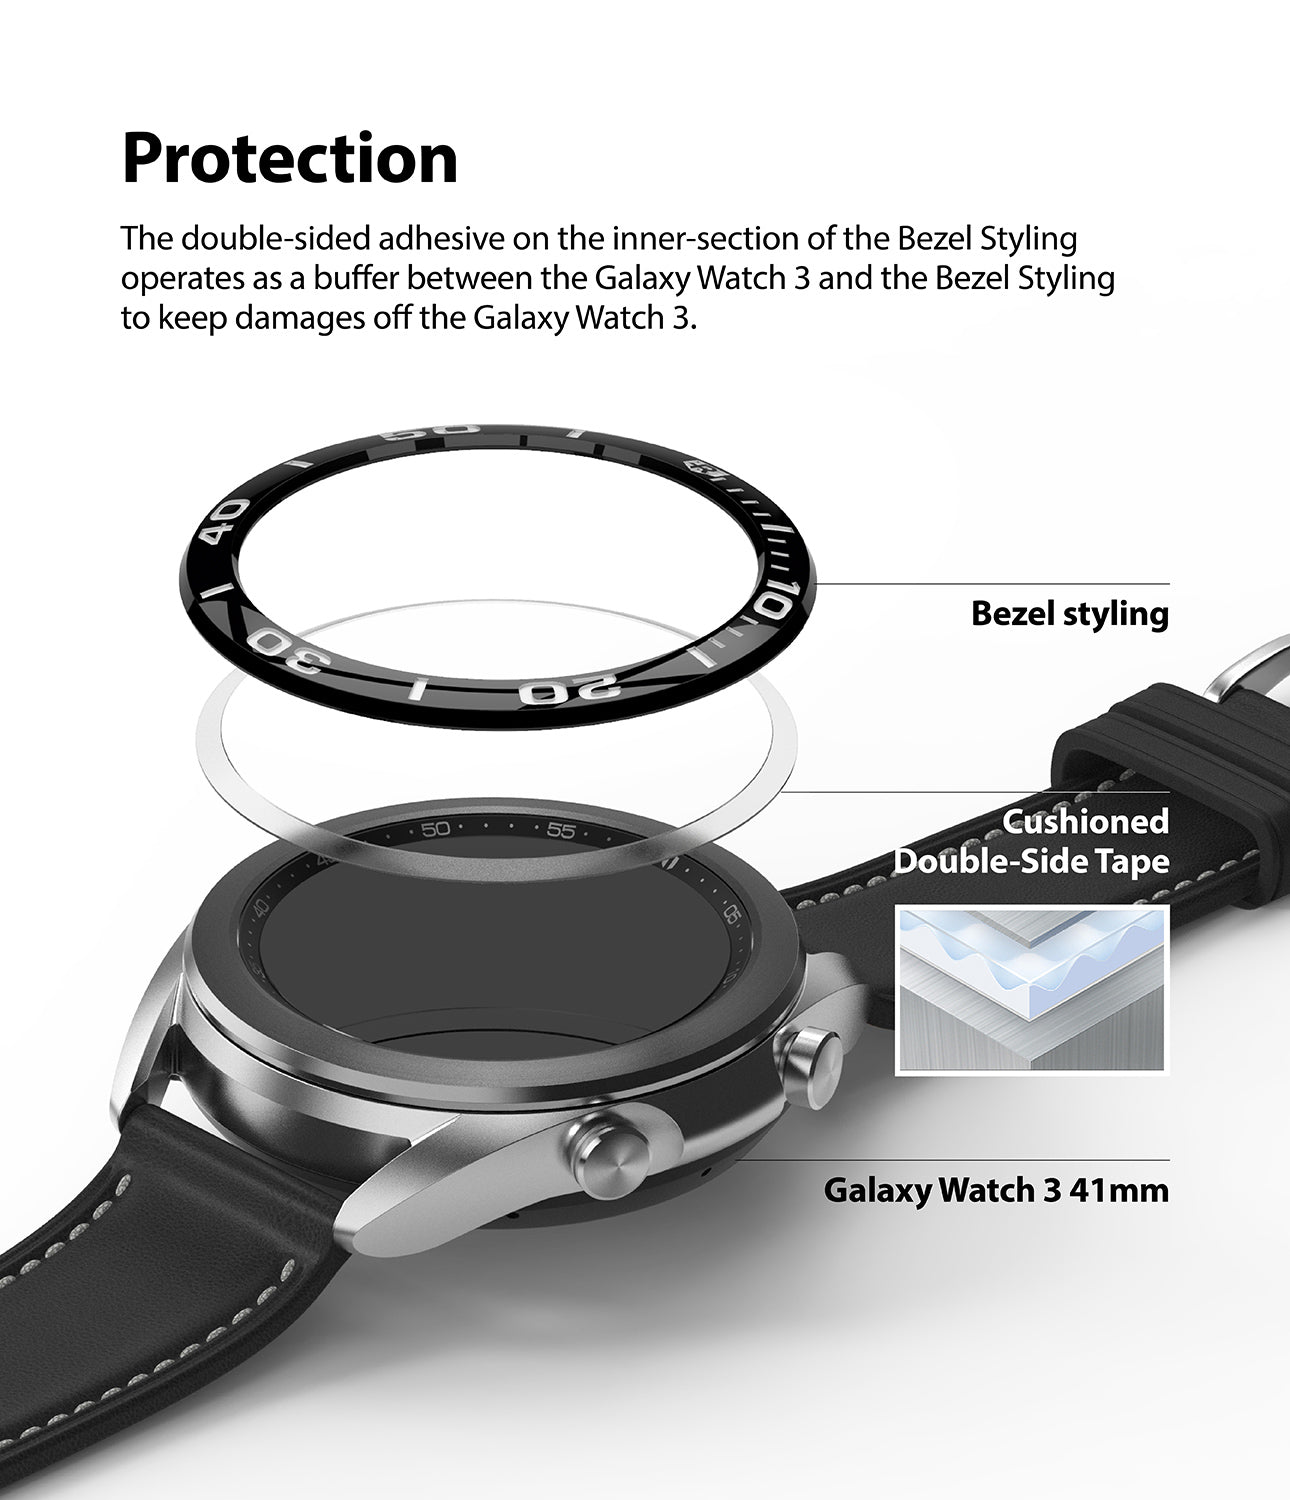 the double sided adhesive on the inner section of the bezel styling operates as a buffer between the galaxy watch 3 and the bezel styling to keep damages off the galaxy watch